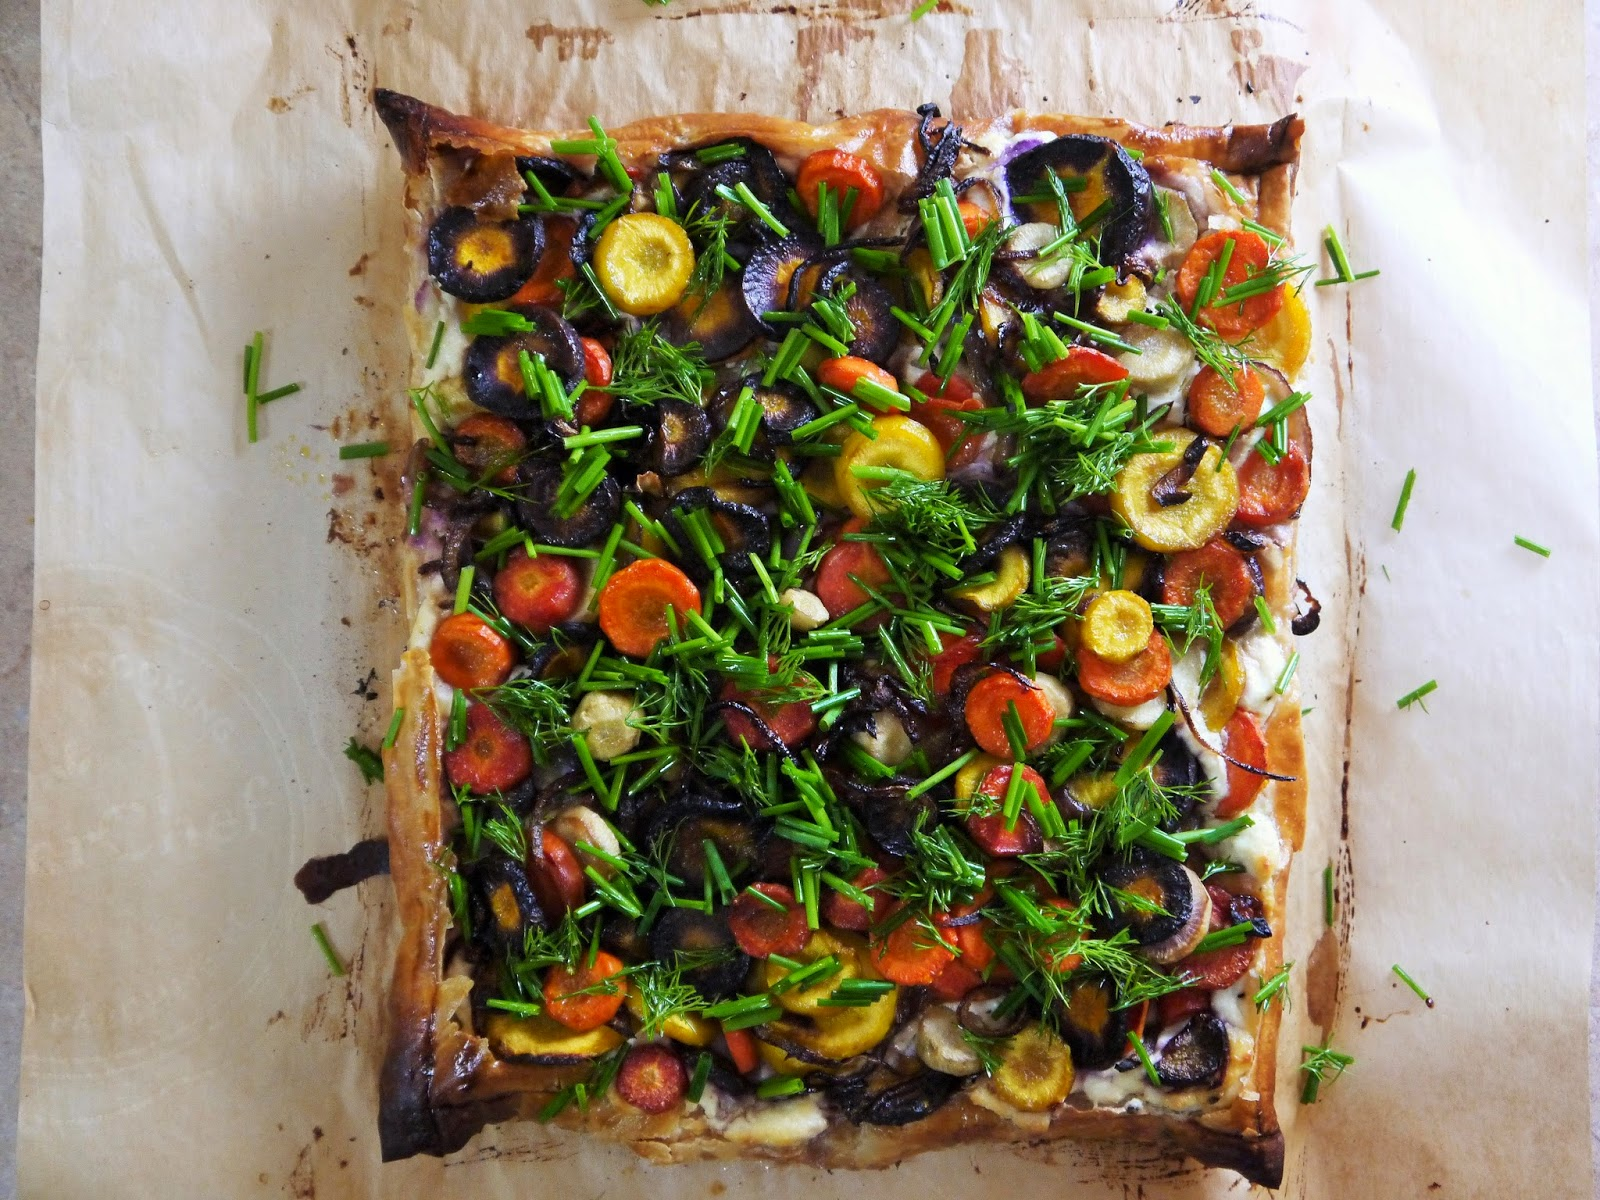 Carrot and herb tart